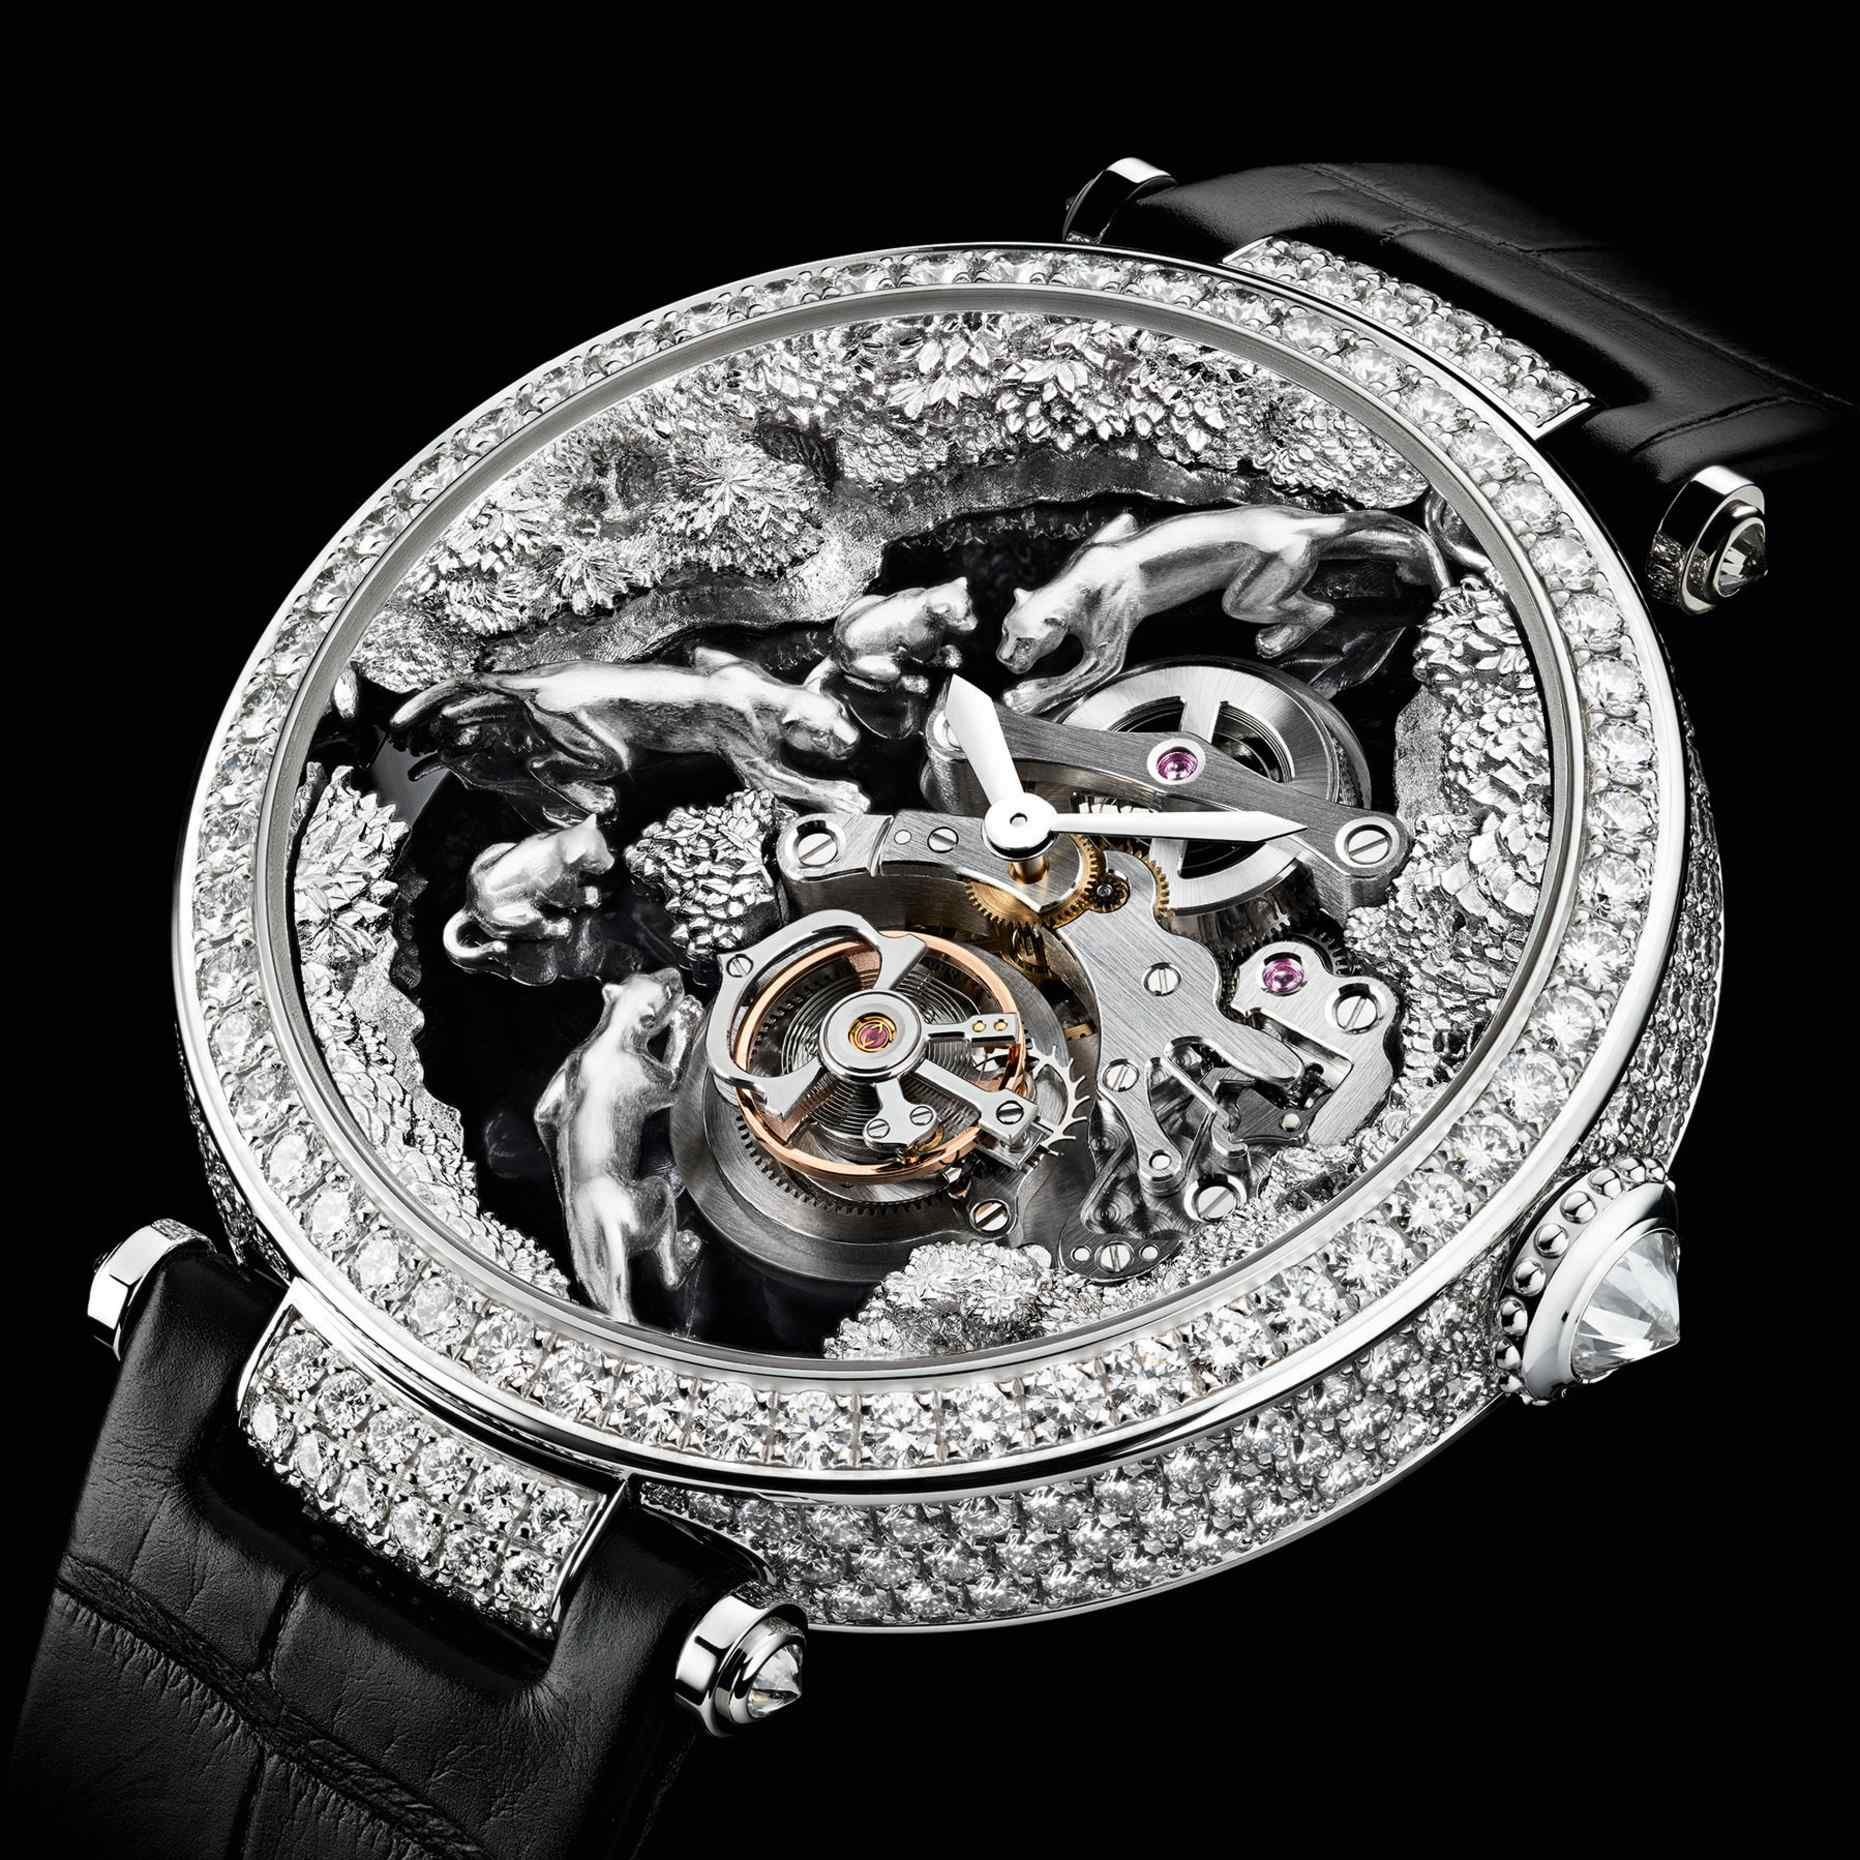 Microsculpture Watches Luxury Watches For Men Watches For Men Skeleton Watches